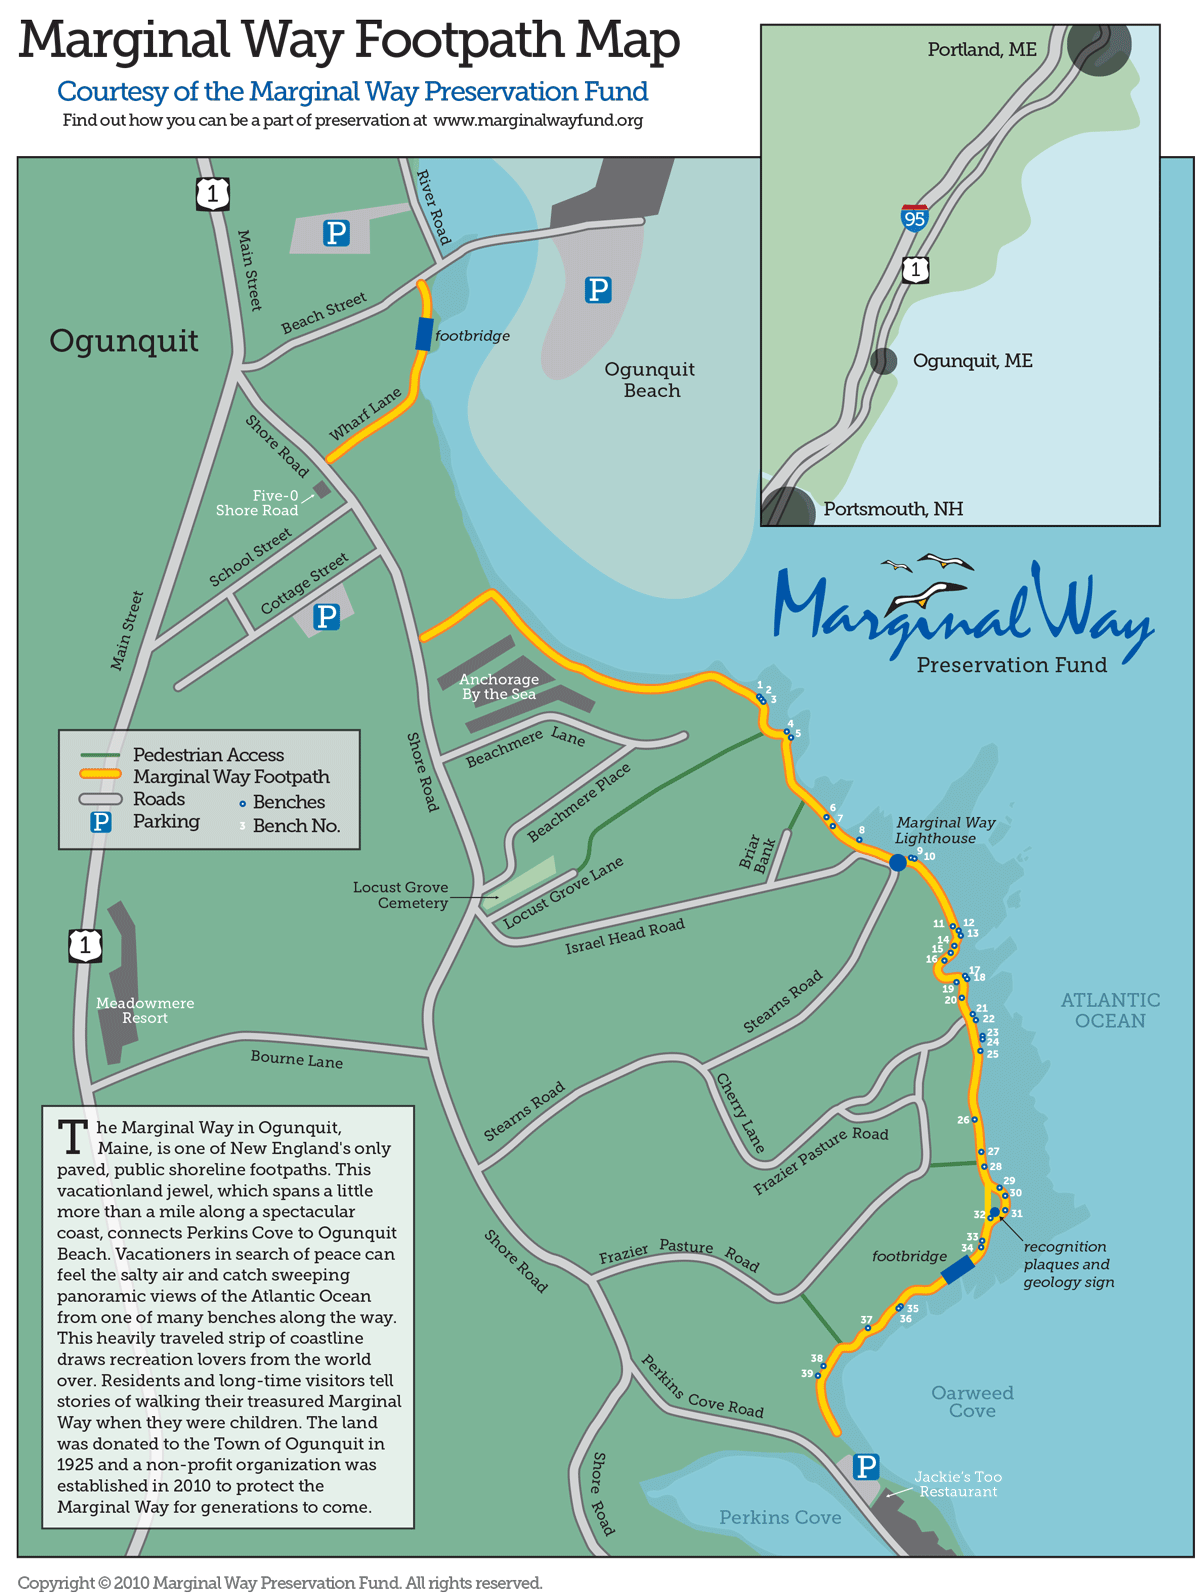 Map of Marginal Way